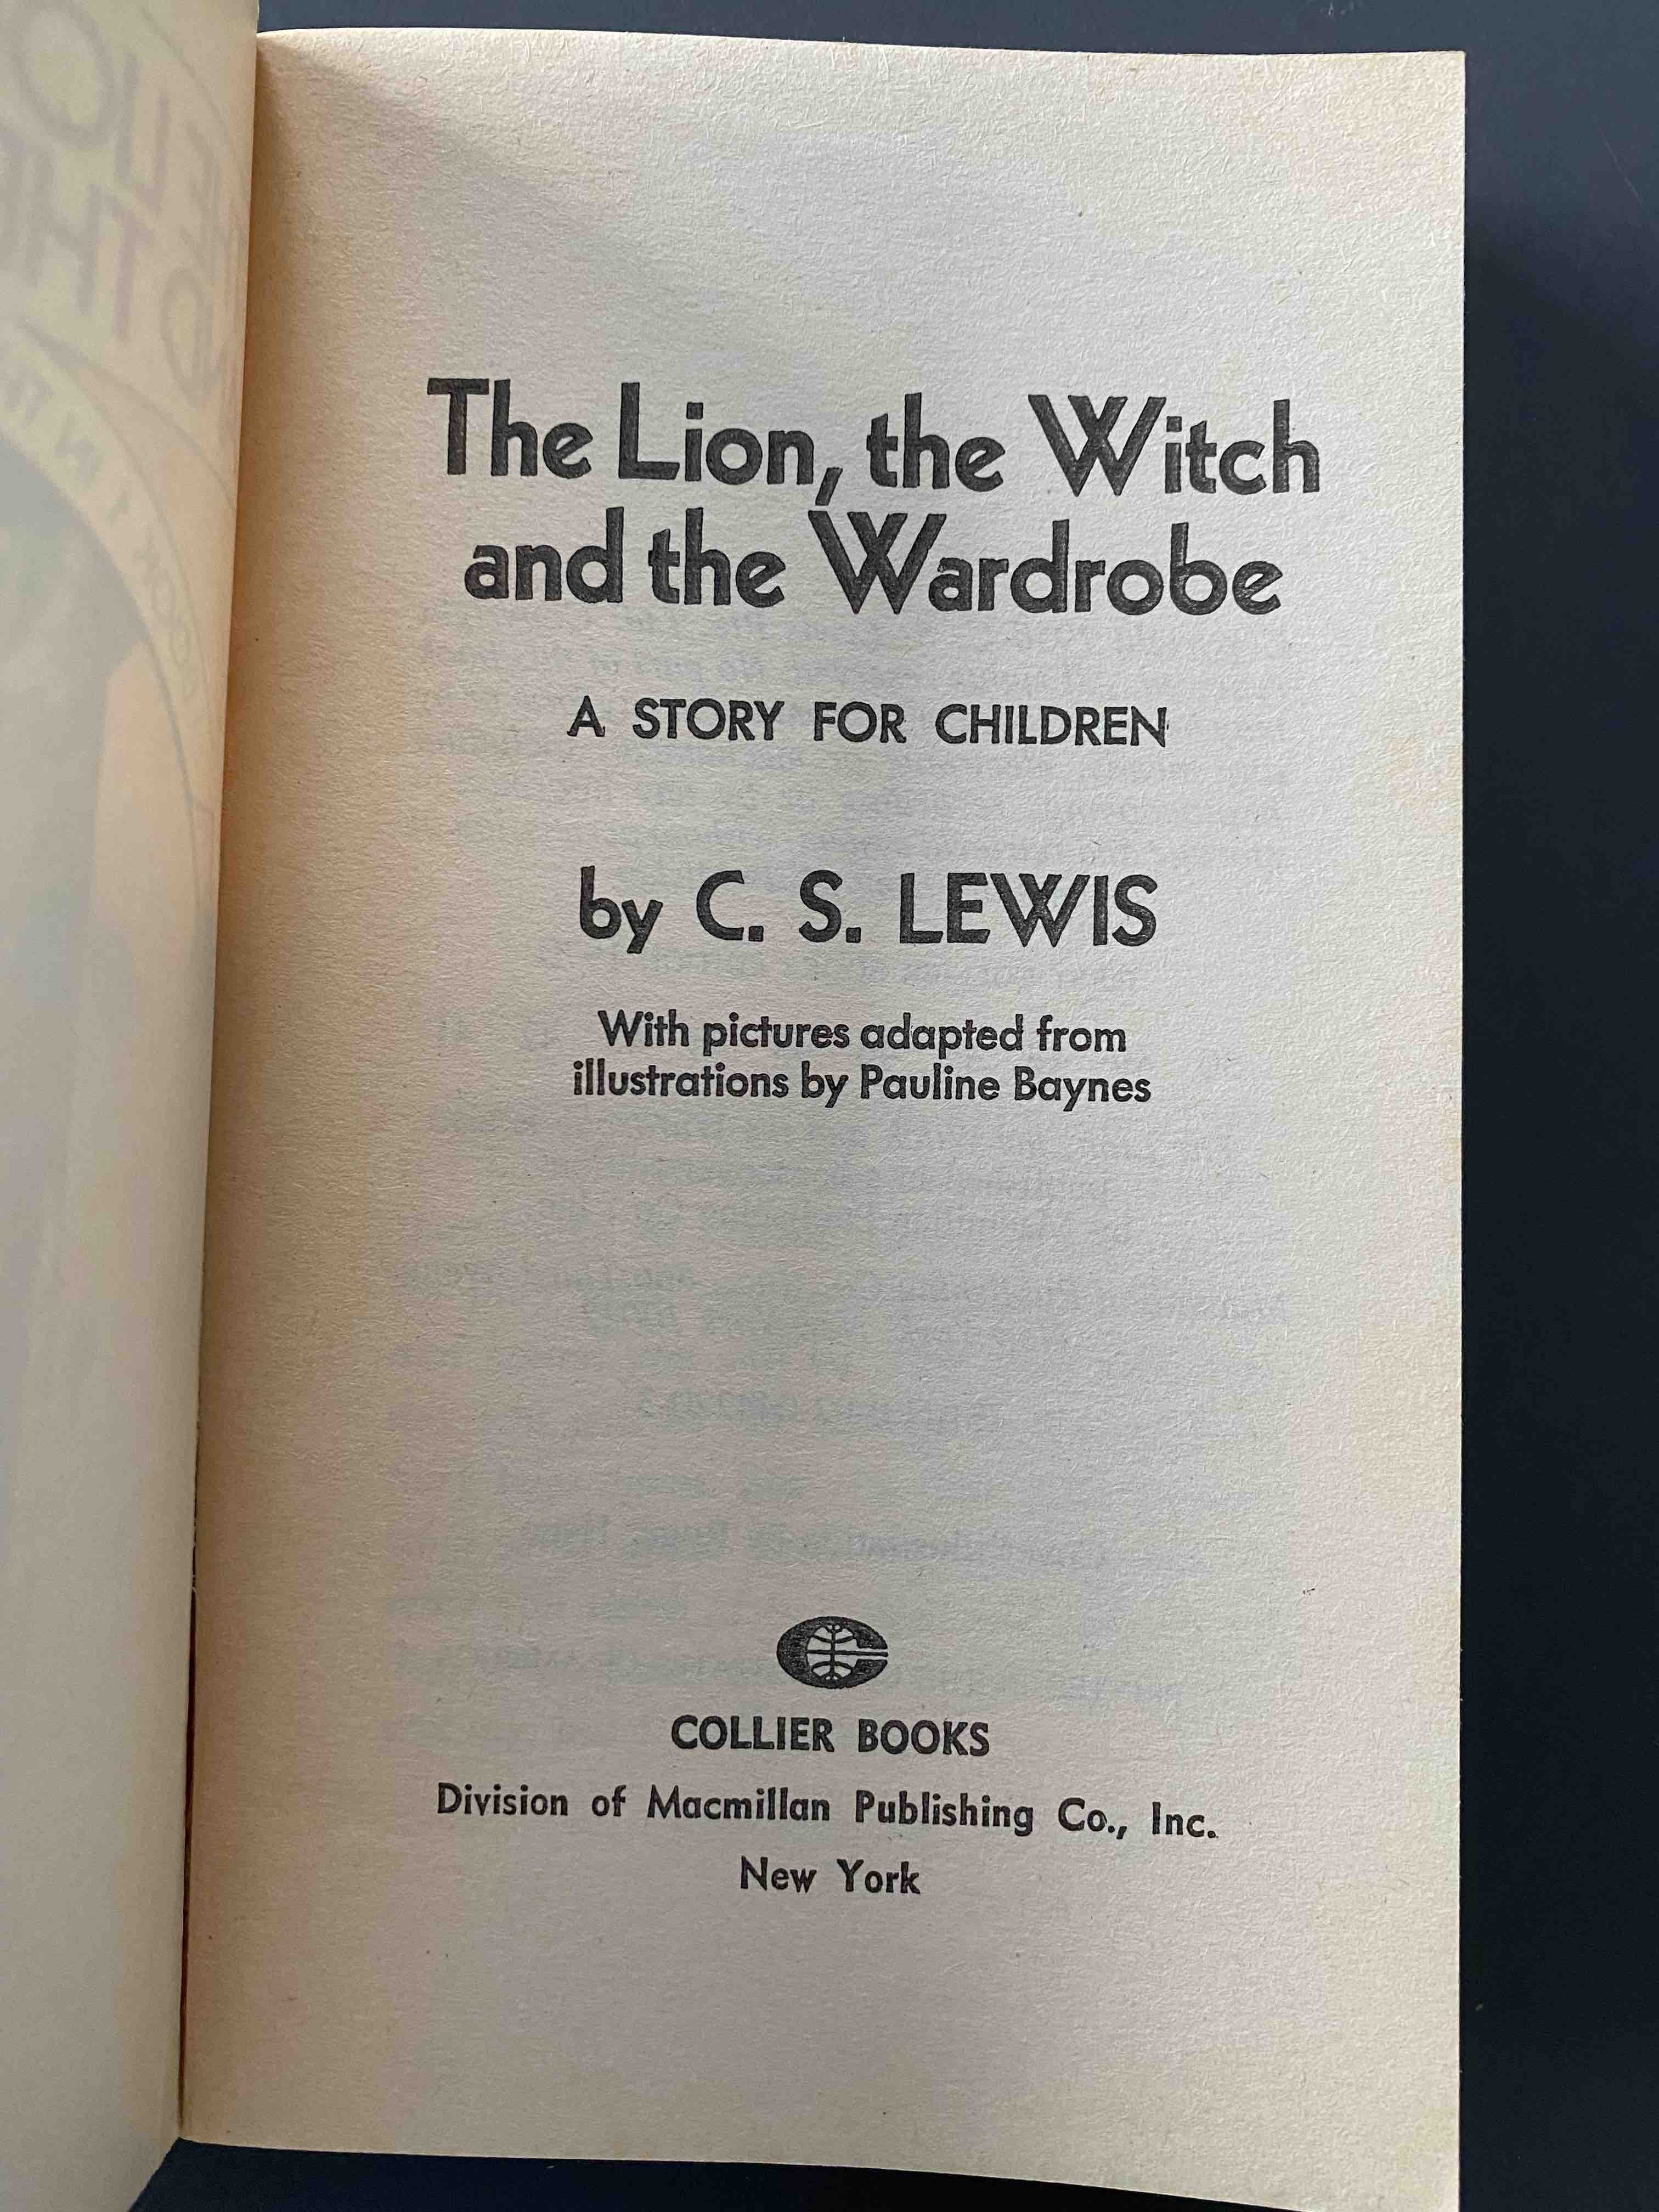 C.S. Lewis, The Lion, the Witch, and the Wardrobe. Title Page